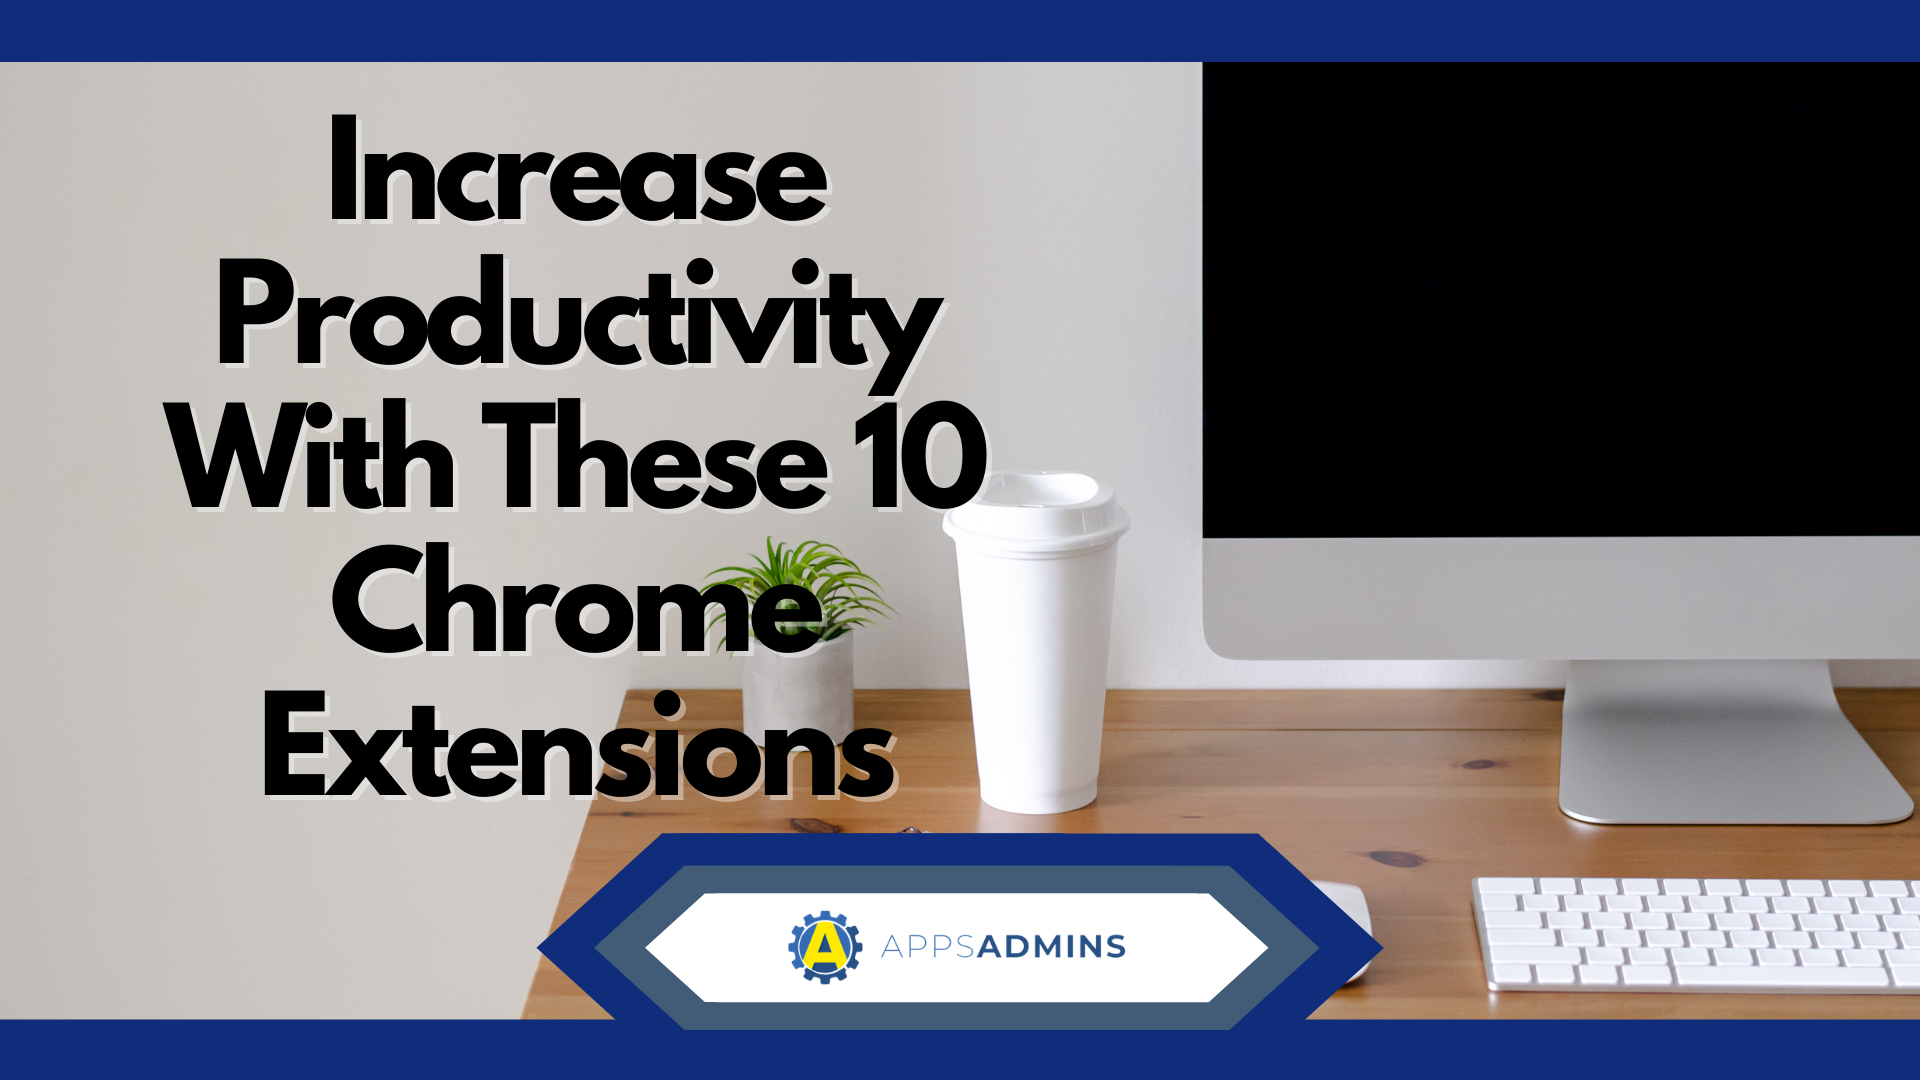 Increase Your Business Productivity By Using These 10 Chrome Extensions